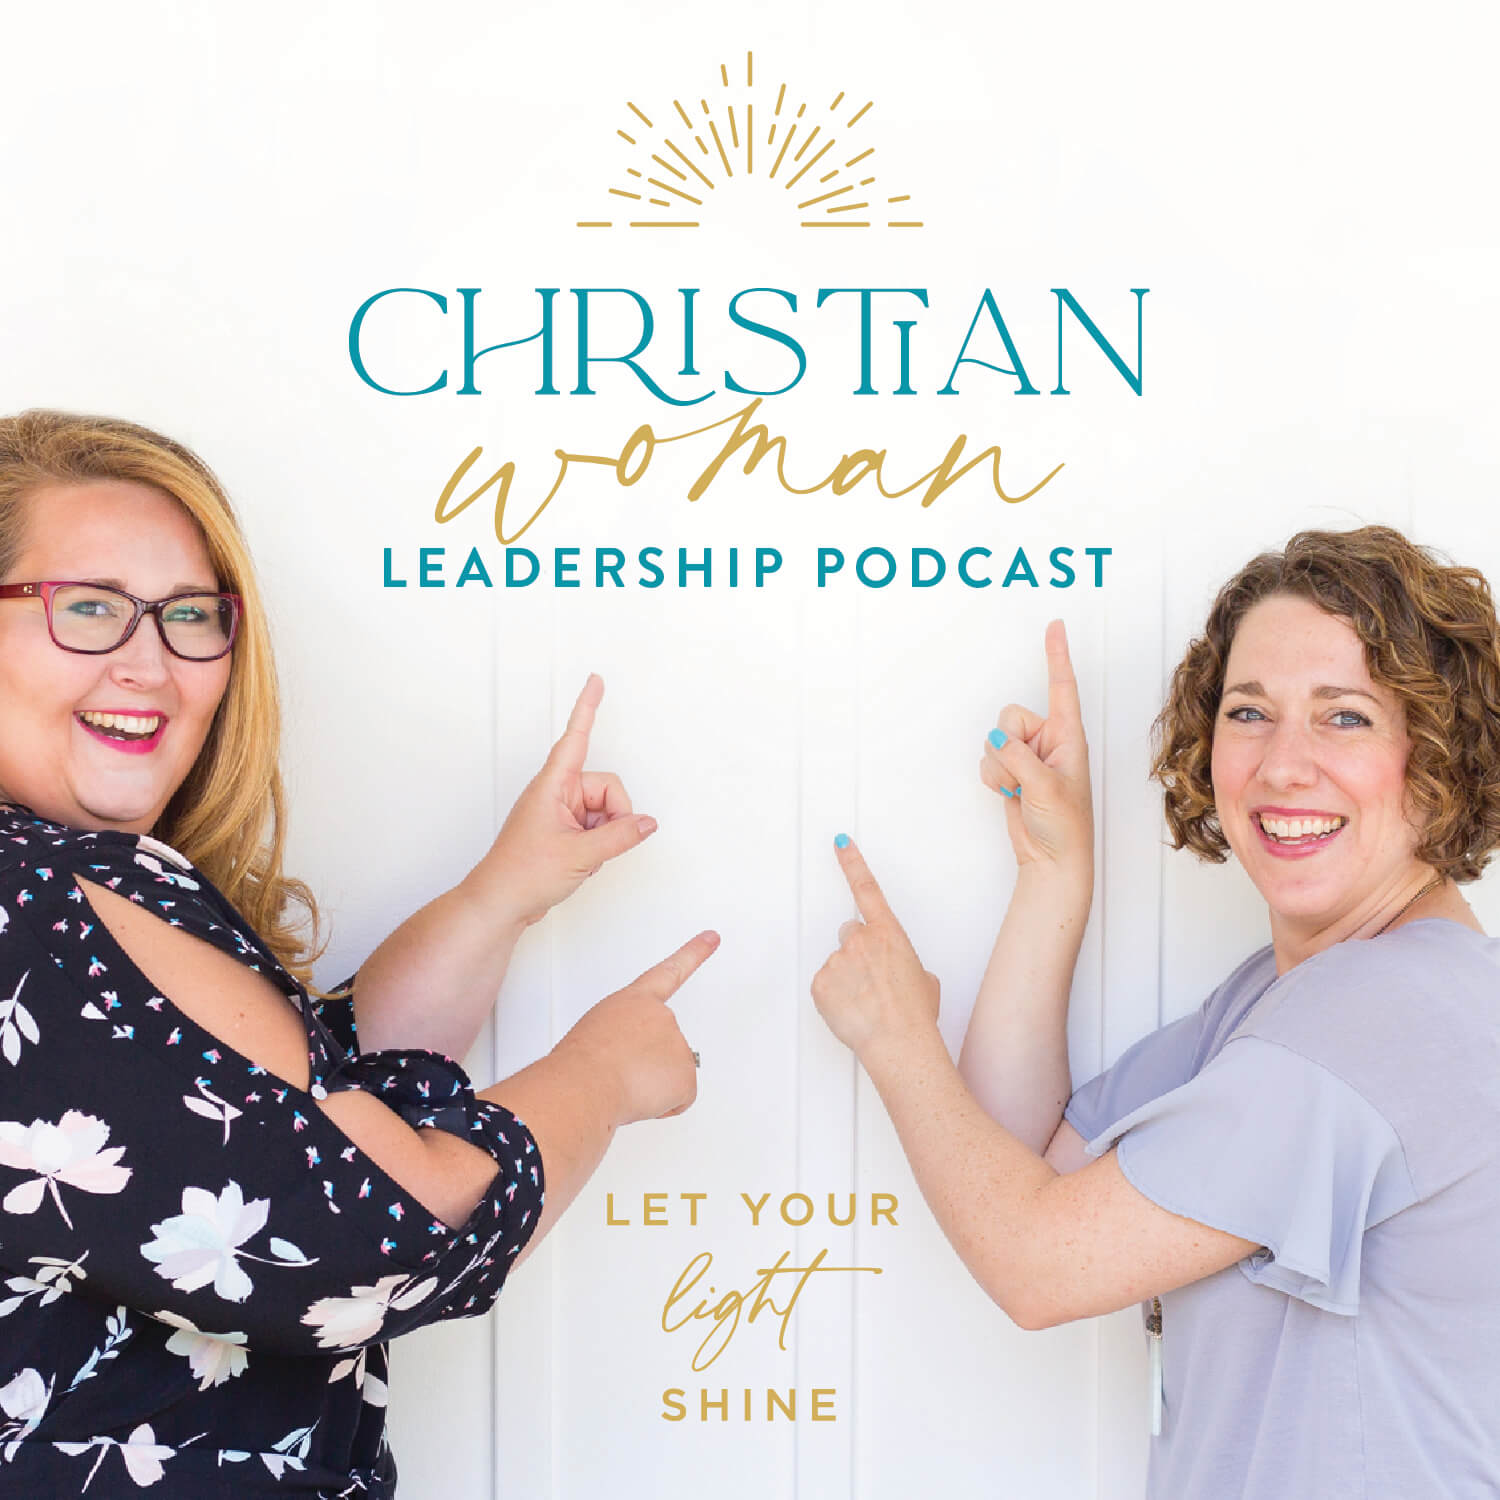 Christian Woman Leadership Podcast artwork